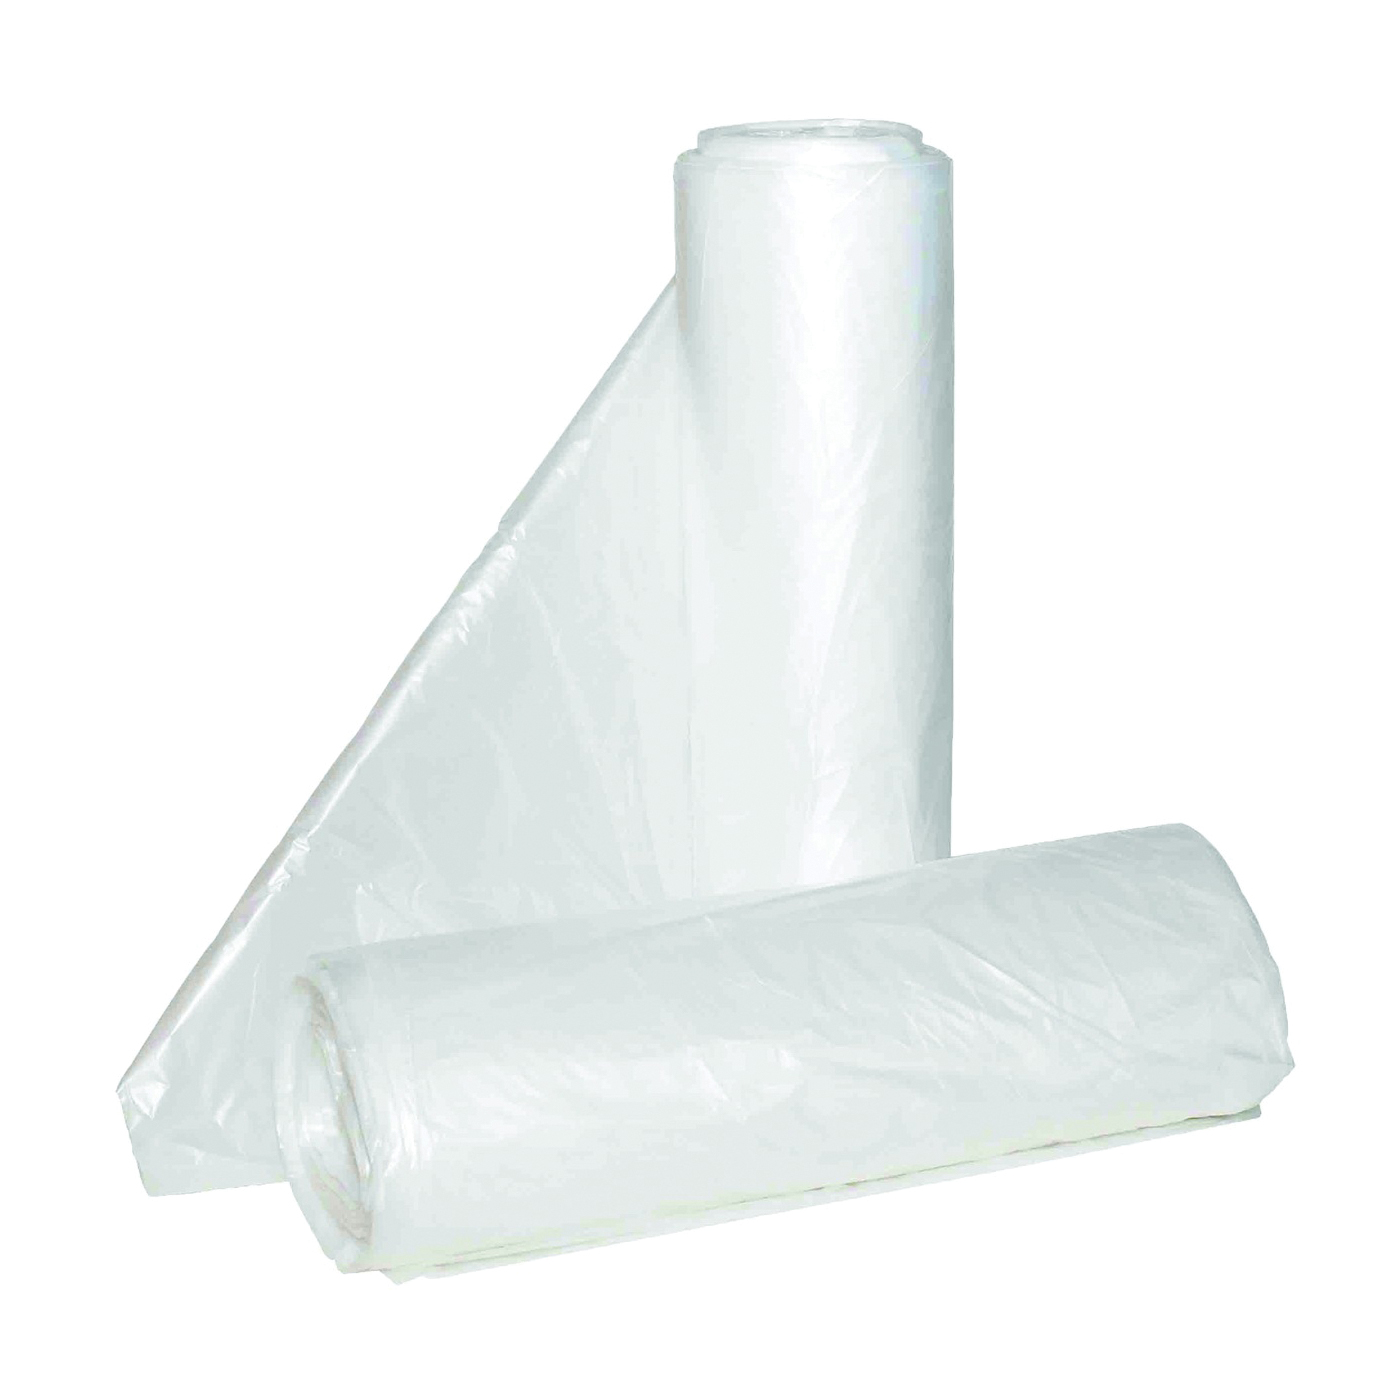 Picture of ALUF PLASTICS Hi-Lene HC HC-243306C Can Liner, 12 to 16 gal Capacity, Polyethylene, Clear